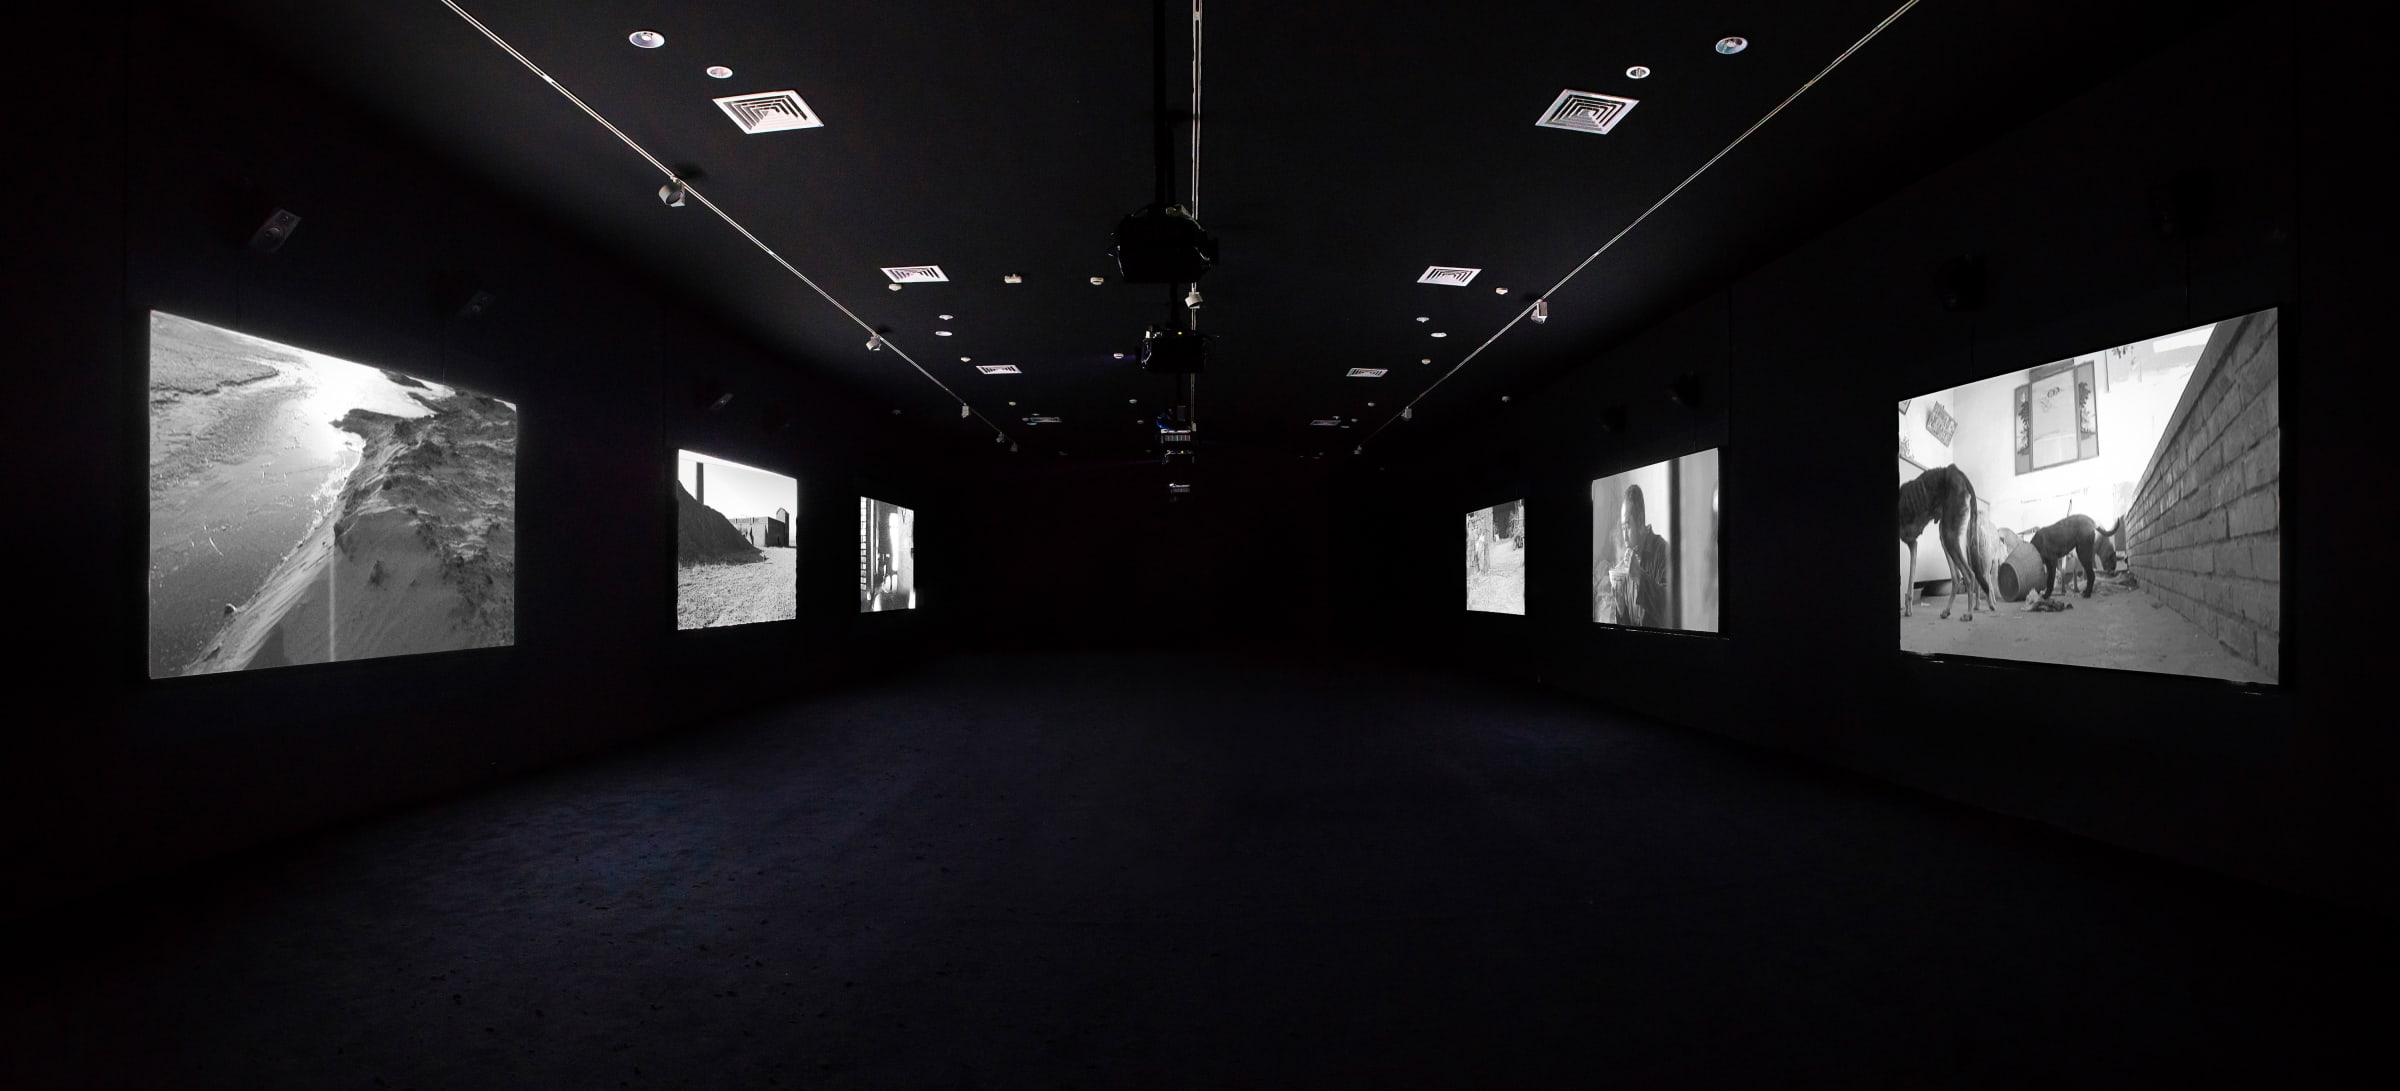 Six black and white images are projected on both sides of a dark room.